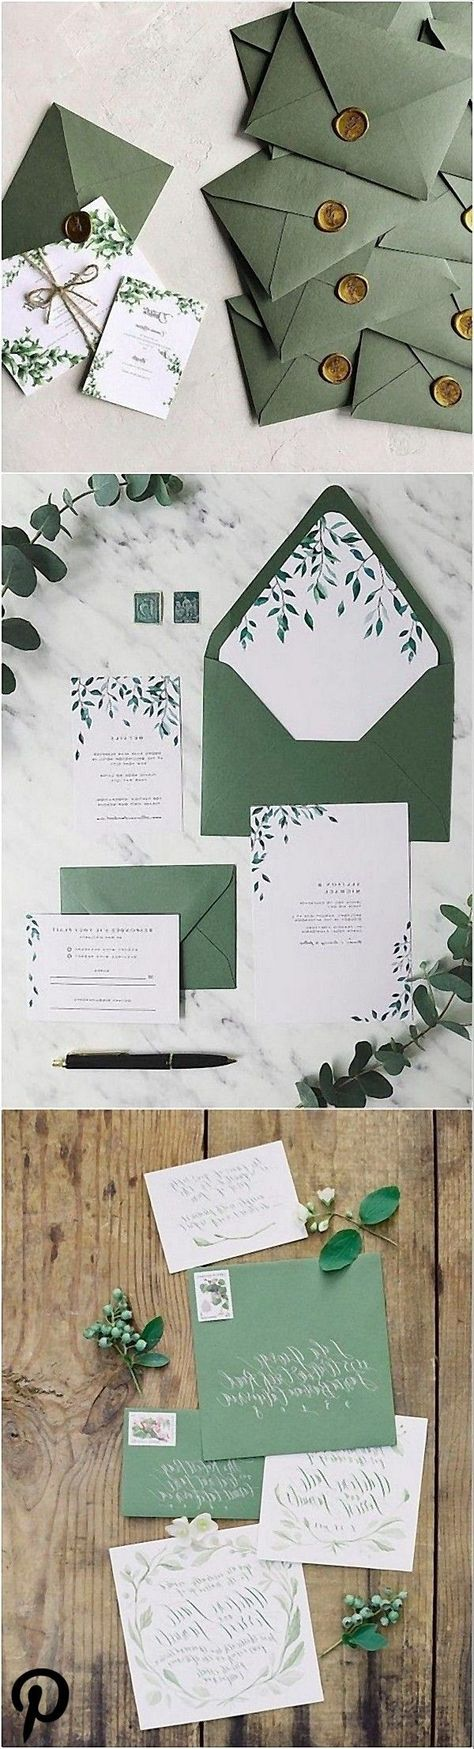 30+ Sage Green Wedding Ideas for 2020 Trends #sagegreendress #30+ #Sage #Green #Wedding #Ideas #for #2020 30+ Sage Green Wedding Ideas for 2020 Trends #sagegreendress 30+ Sage Green Wedding Ideas for 2020 Trends #sagegreendress #30+ #Sage #Green #Wedding #Ideas #for #2020 30+ Sage Green Wedding Ideas for 2020 Trends